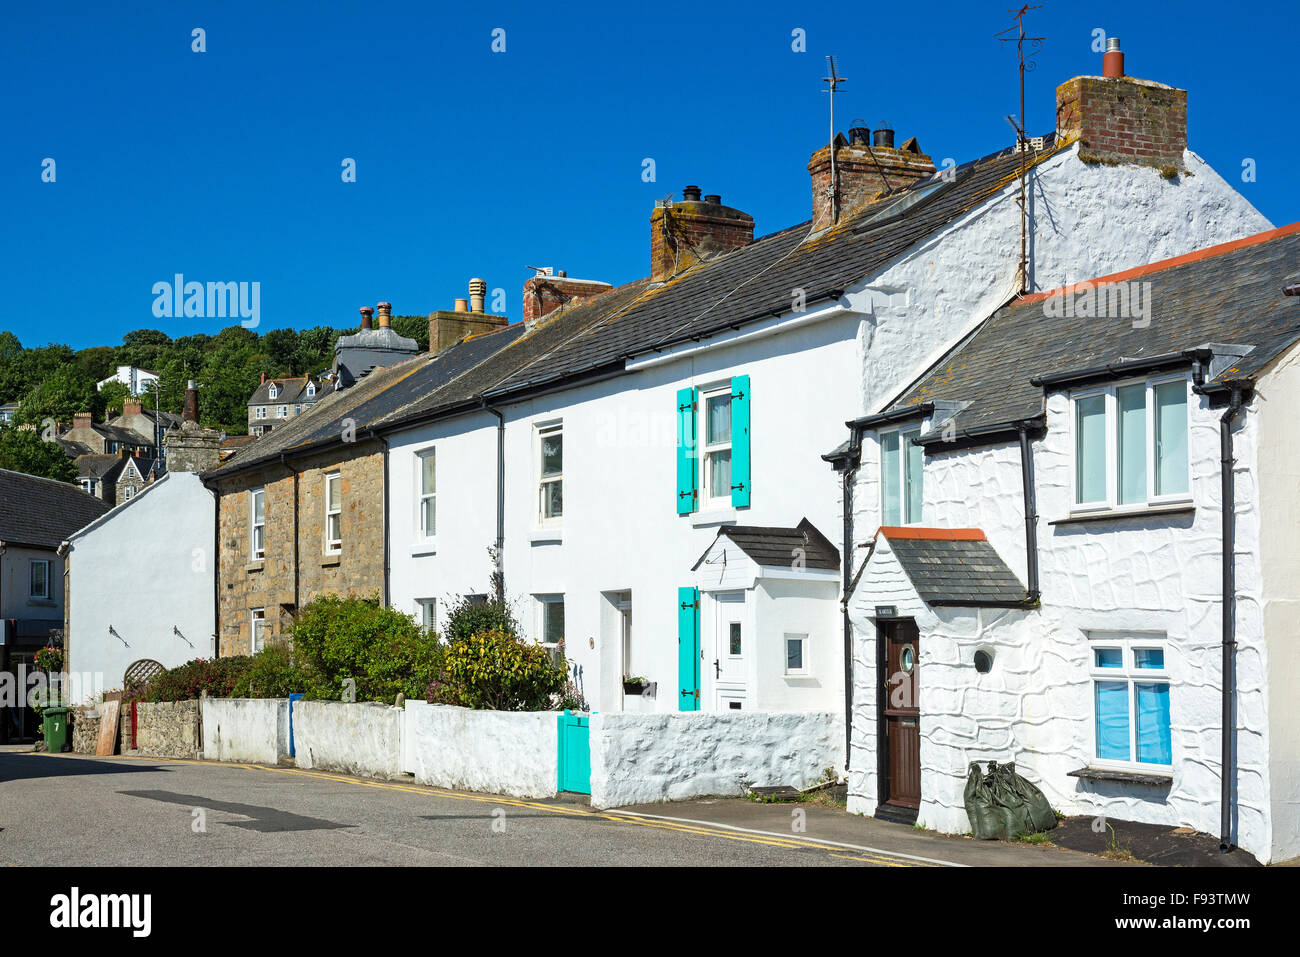 Fishermens cottages at Newlyn in Cornwall, UK - Stock Image